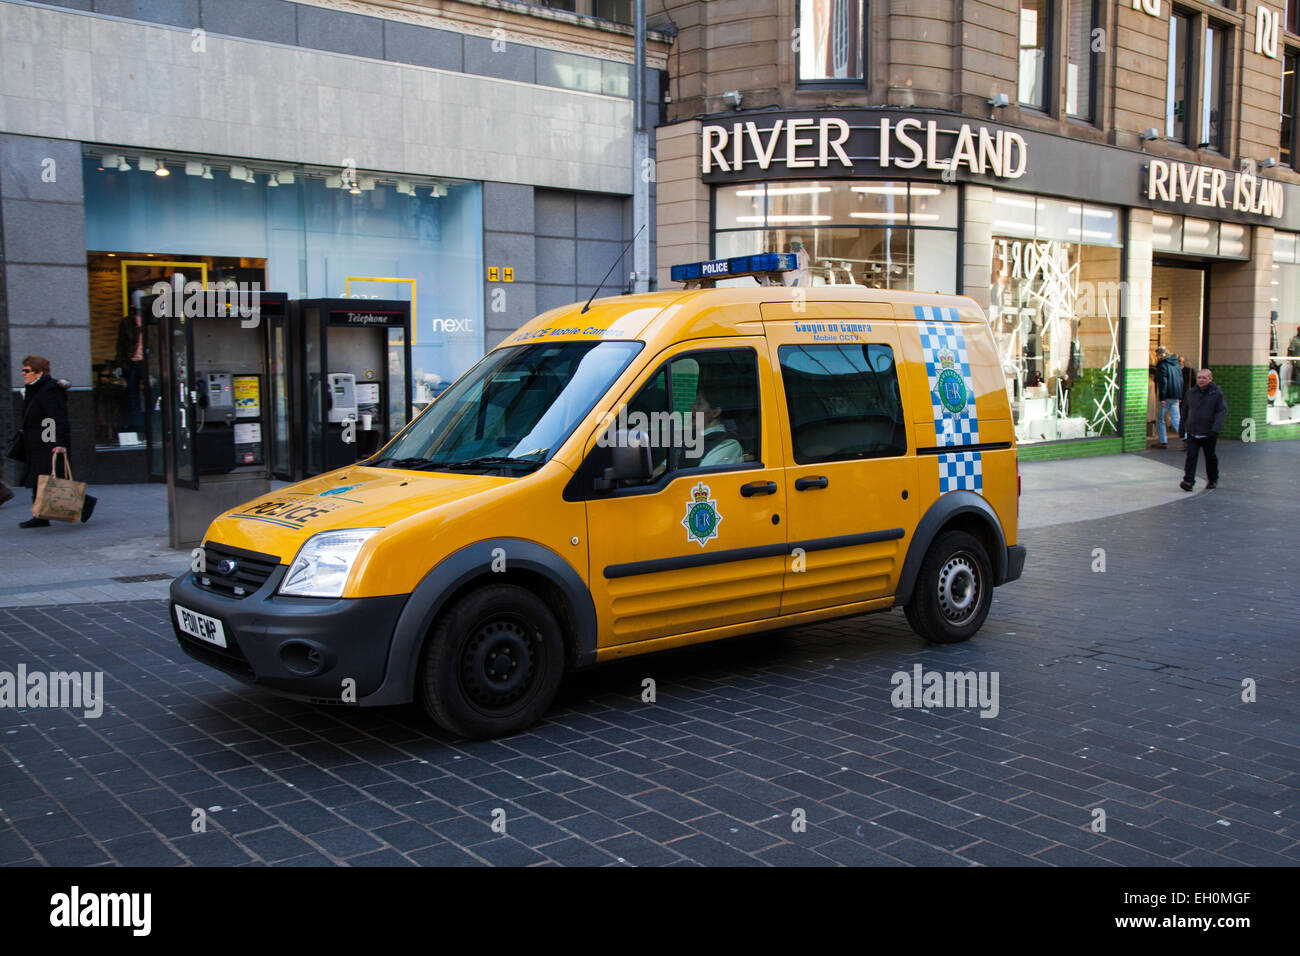 Police Community Safety Mobile CCTV Unit vehicle, with roof camera, patrolling Liverpool One, Merseyside, UK - Stock Image